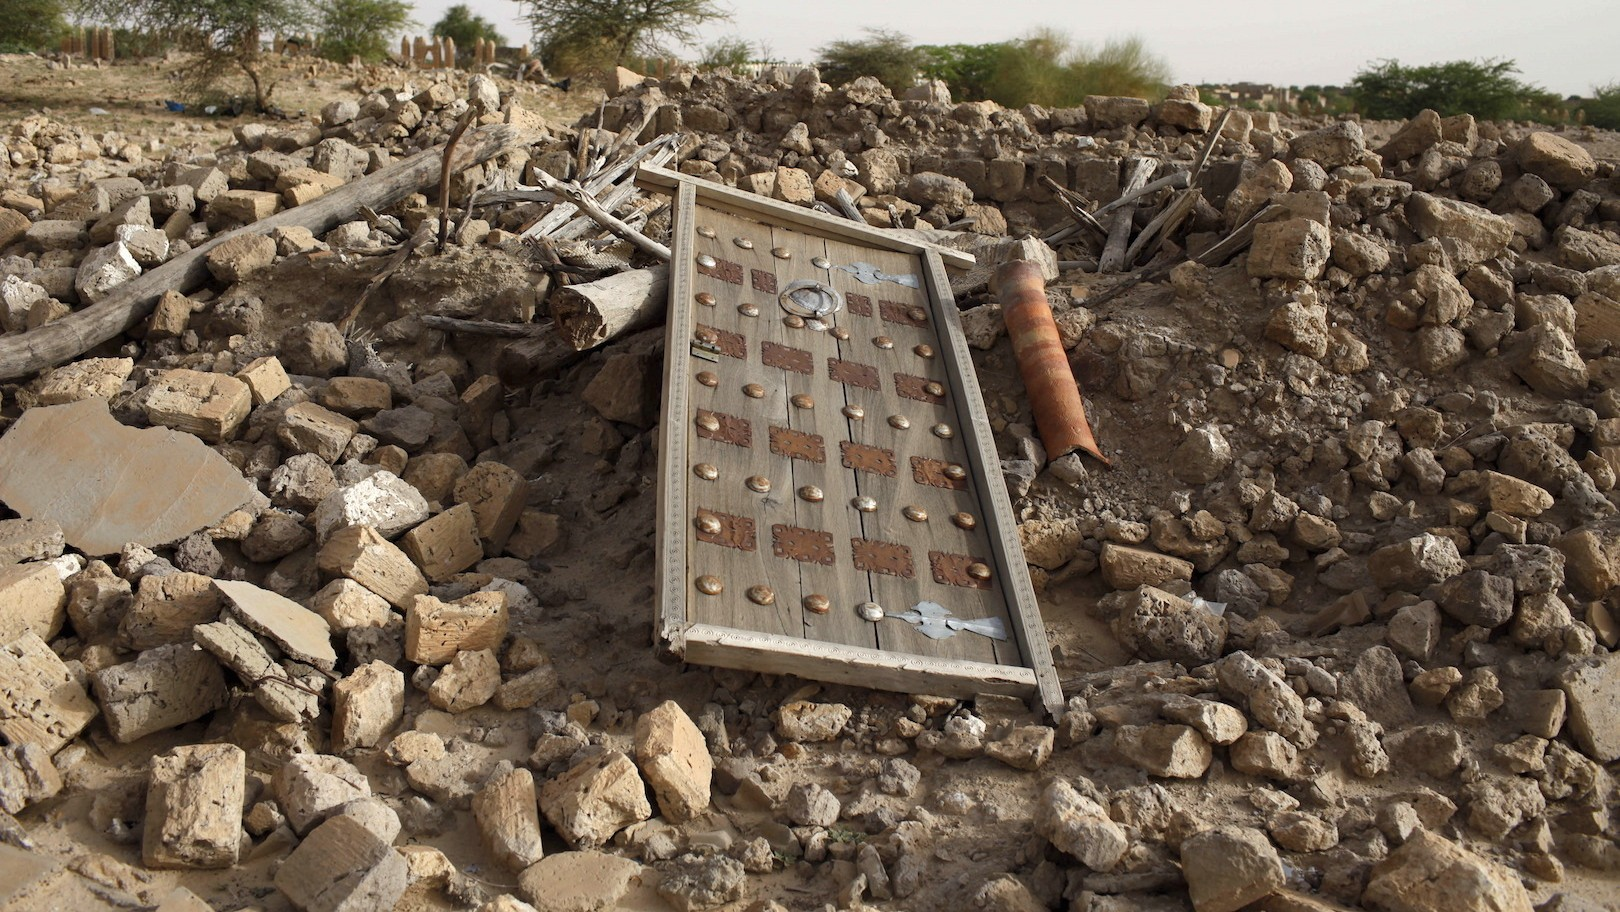 ICC to Decide If Malian Teacher Will Face Charges for Destroying Timbuktu Artifacts